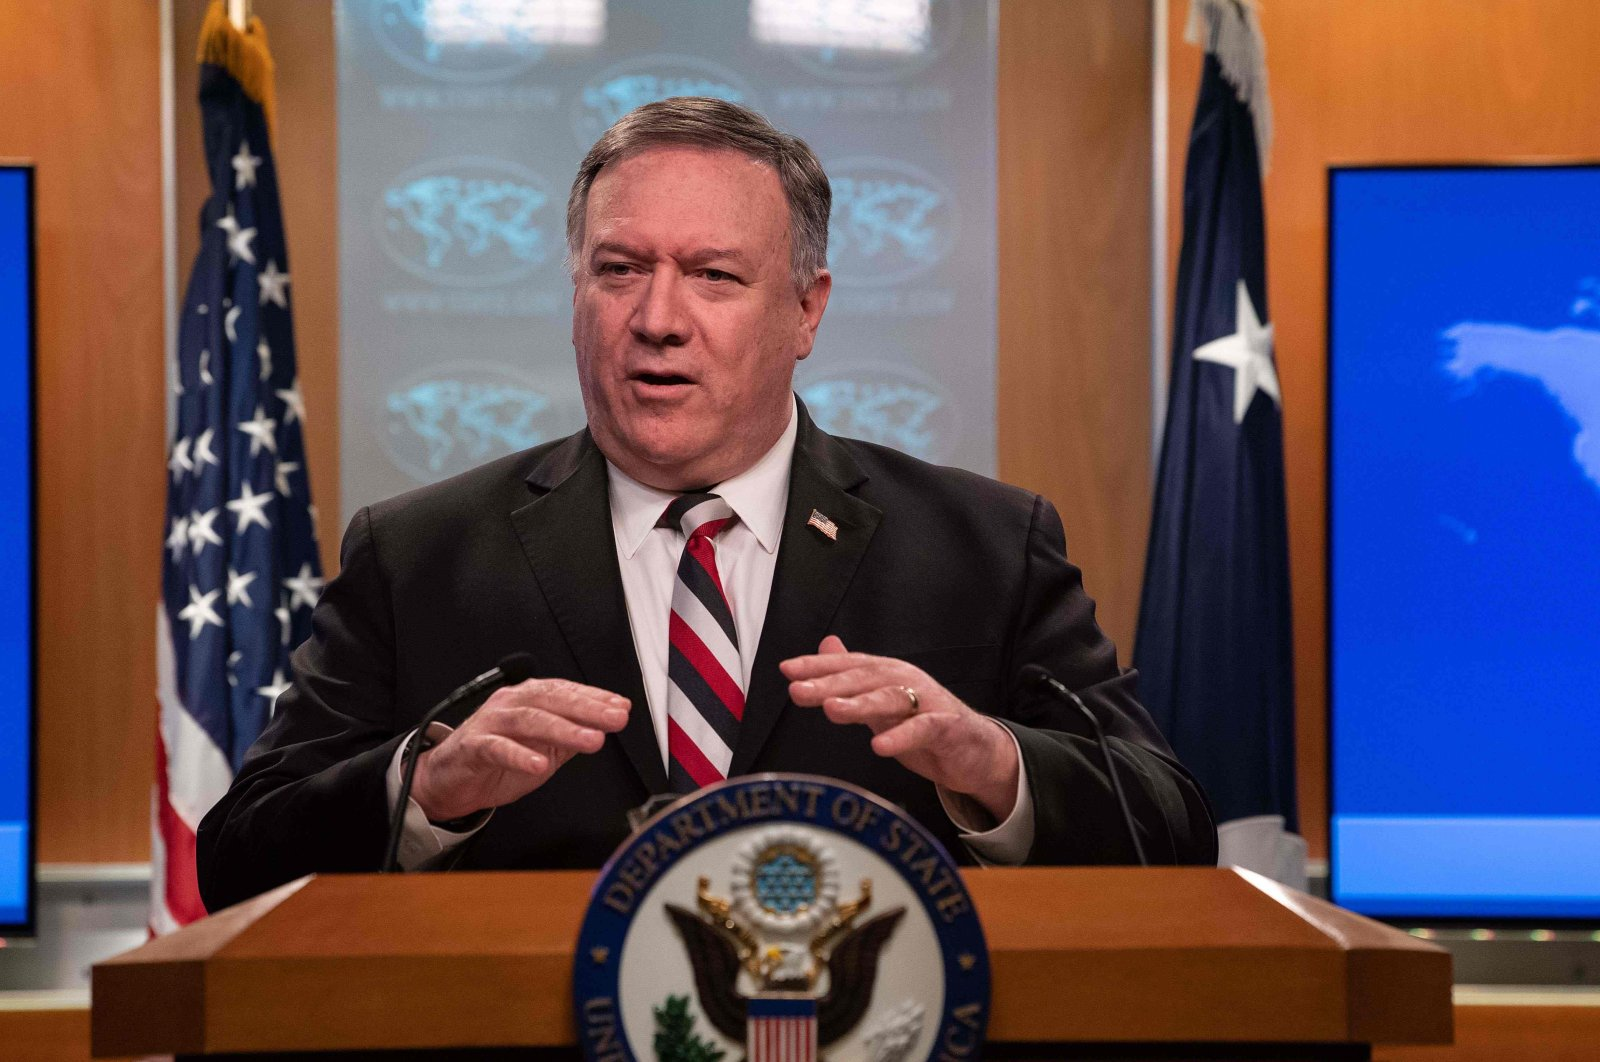 US Secretary of State Mike Pompeo announced sanctions on Syrian regime officials during a press conference at the State Department in Washington DC, on March 17, 2020. (AFP Photo)